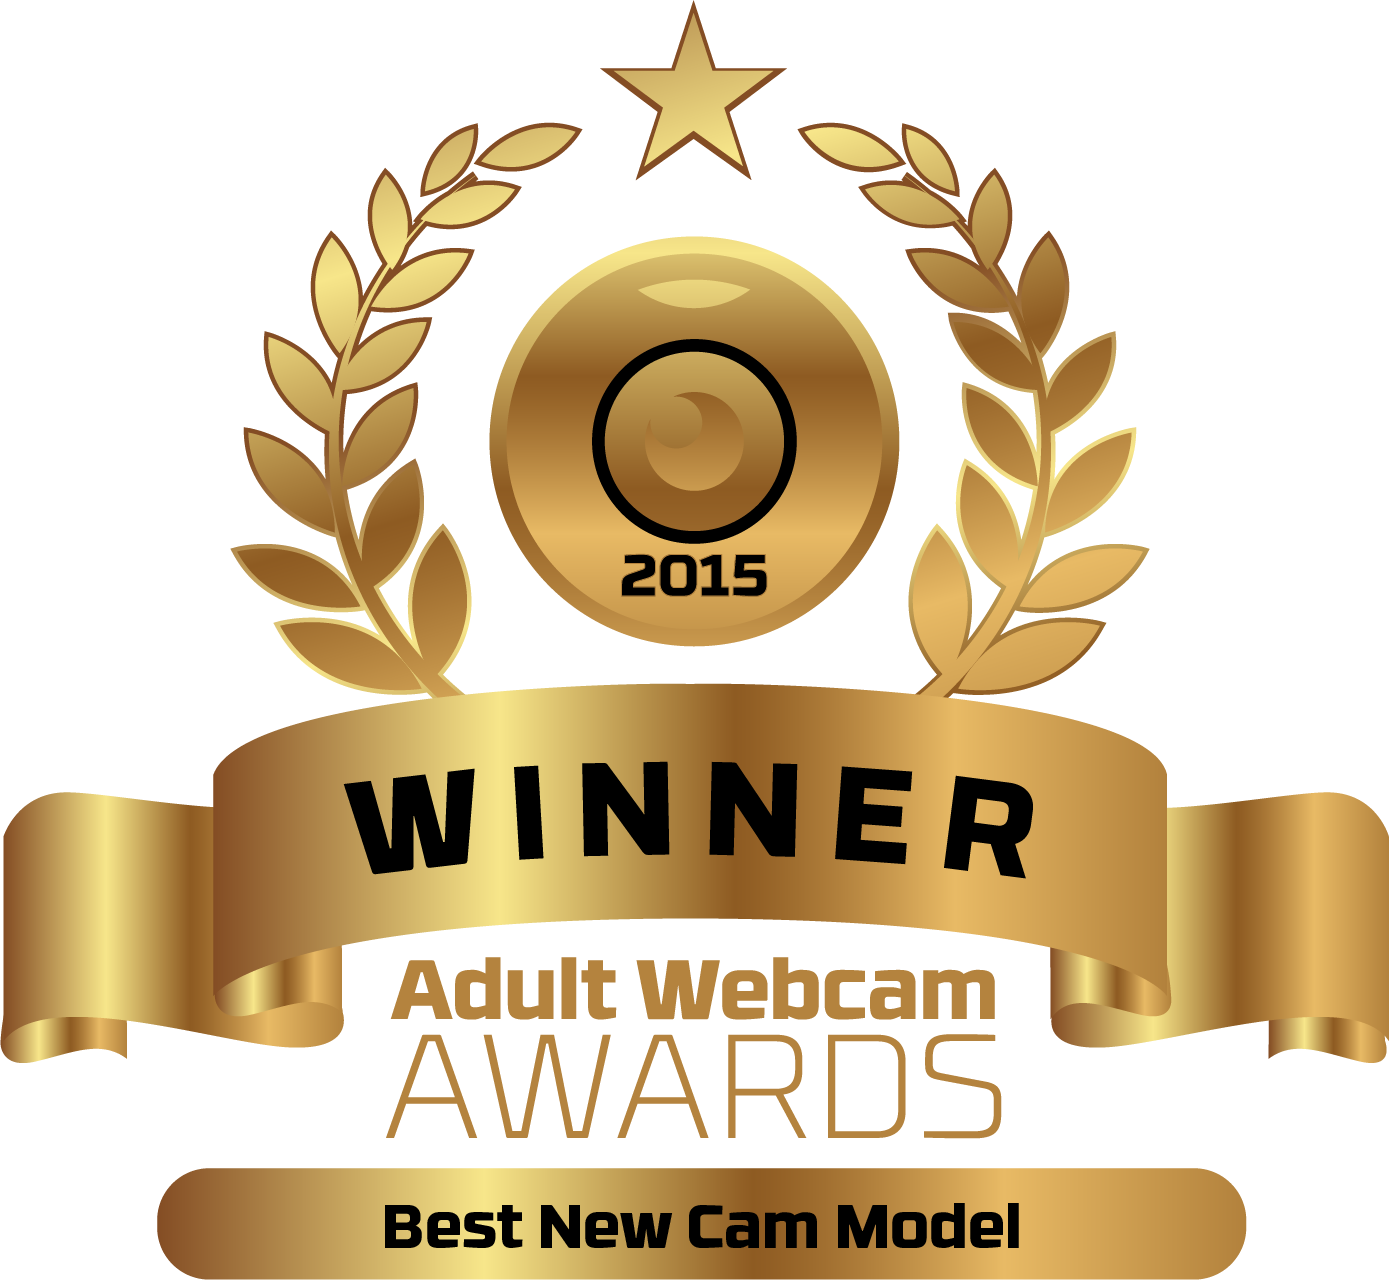 Are you the Top New Cam Model in the Adult Webcam Industry?